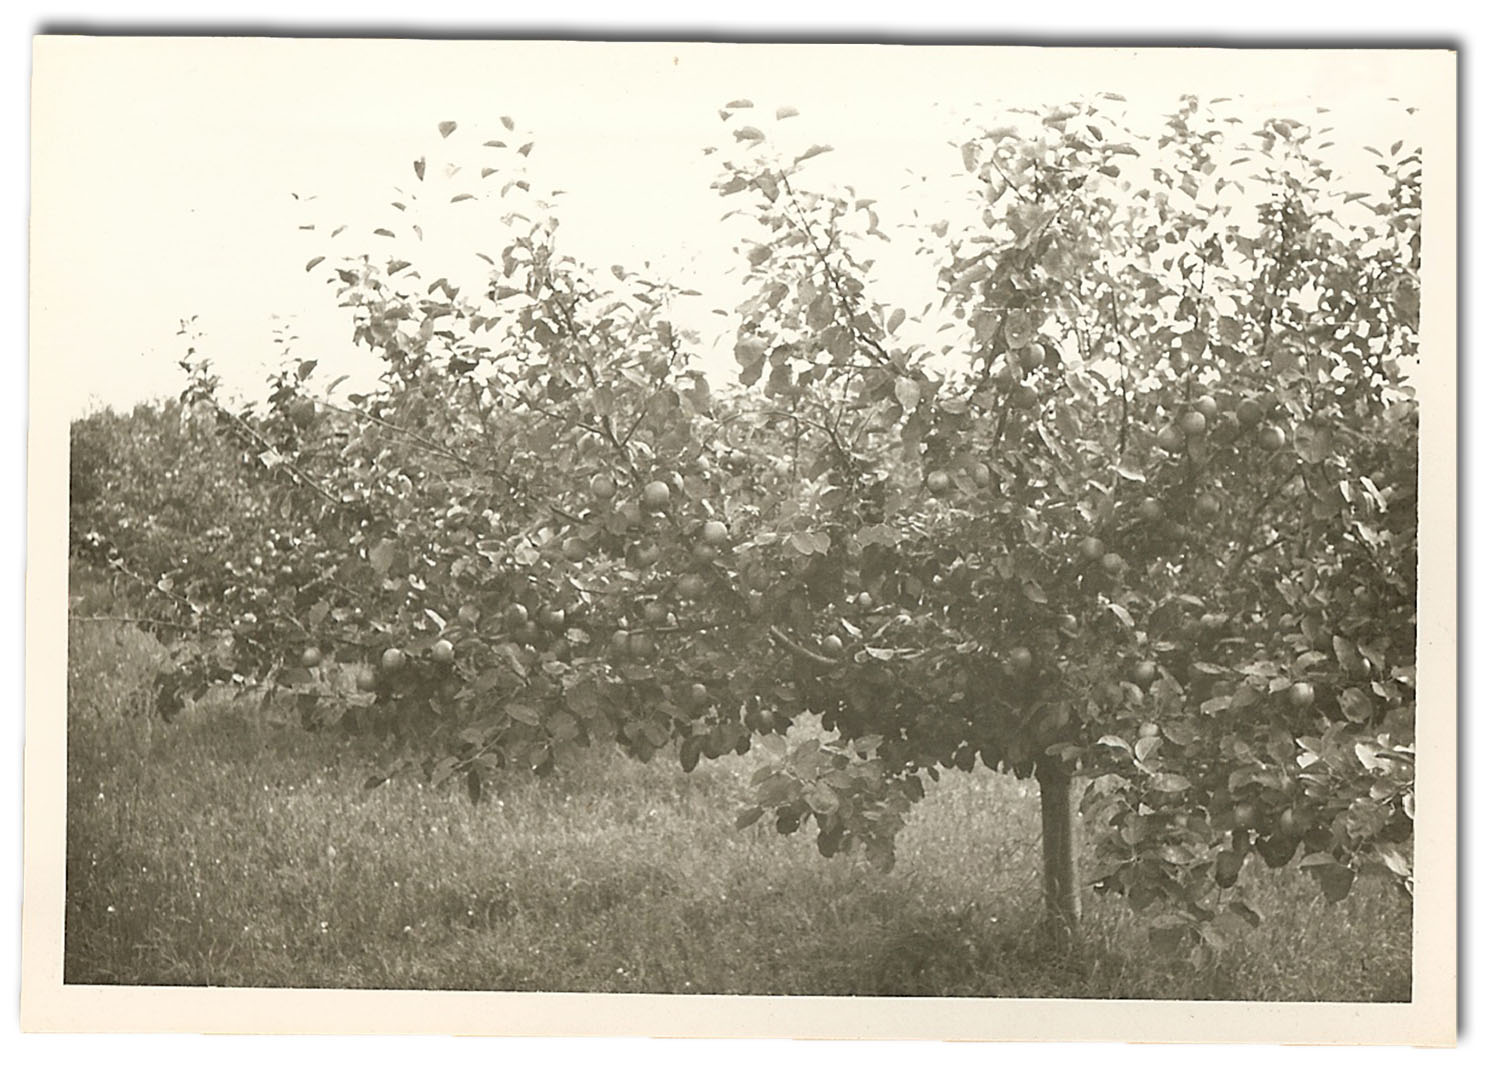 Photo of a 1956 Cox Pomona apple tree at Källagården.